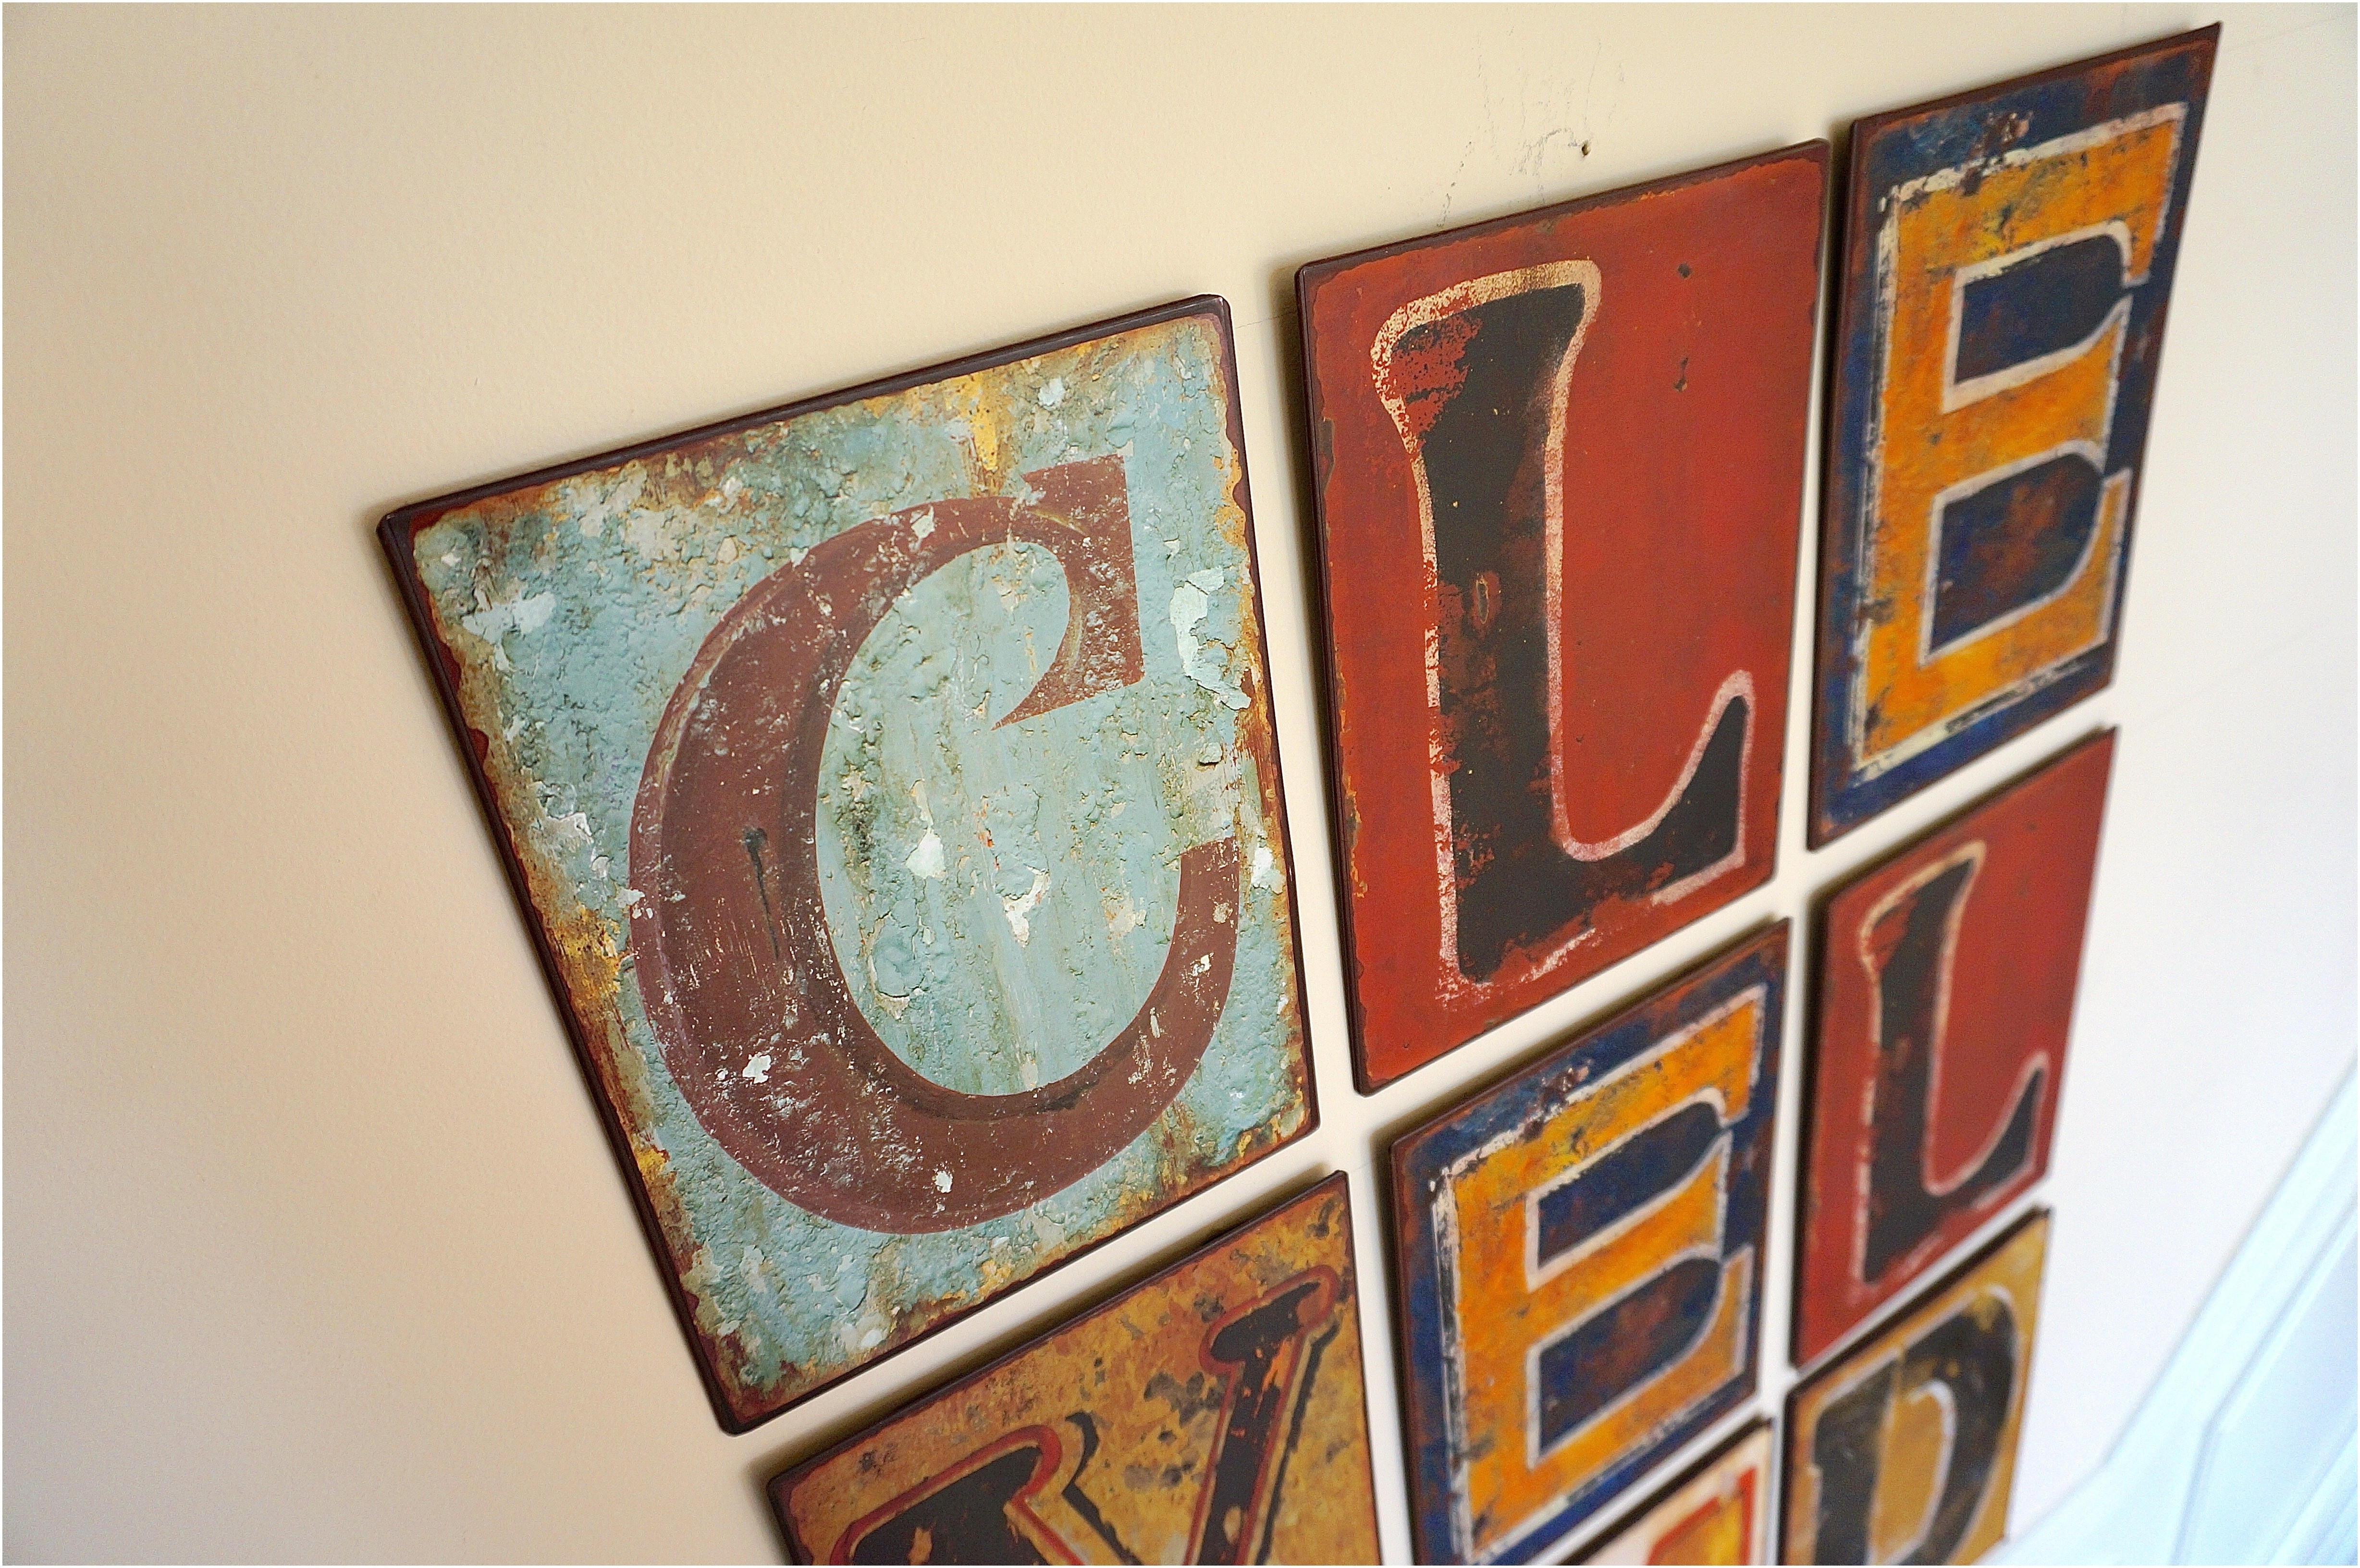 Metal Wall Letters Metal Letter Wall Art – Careyhead With Regard To Most Up To Date Letter Wall Art (View 13 of 20)